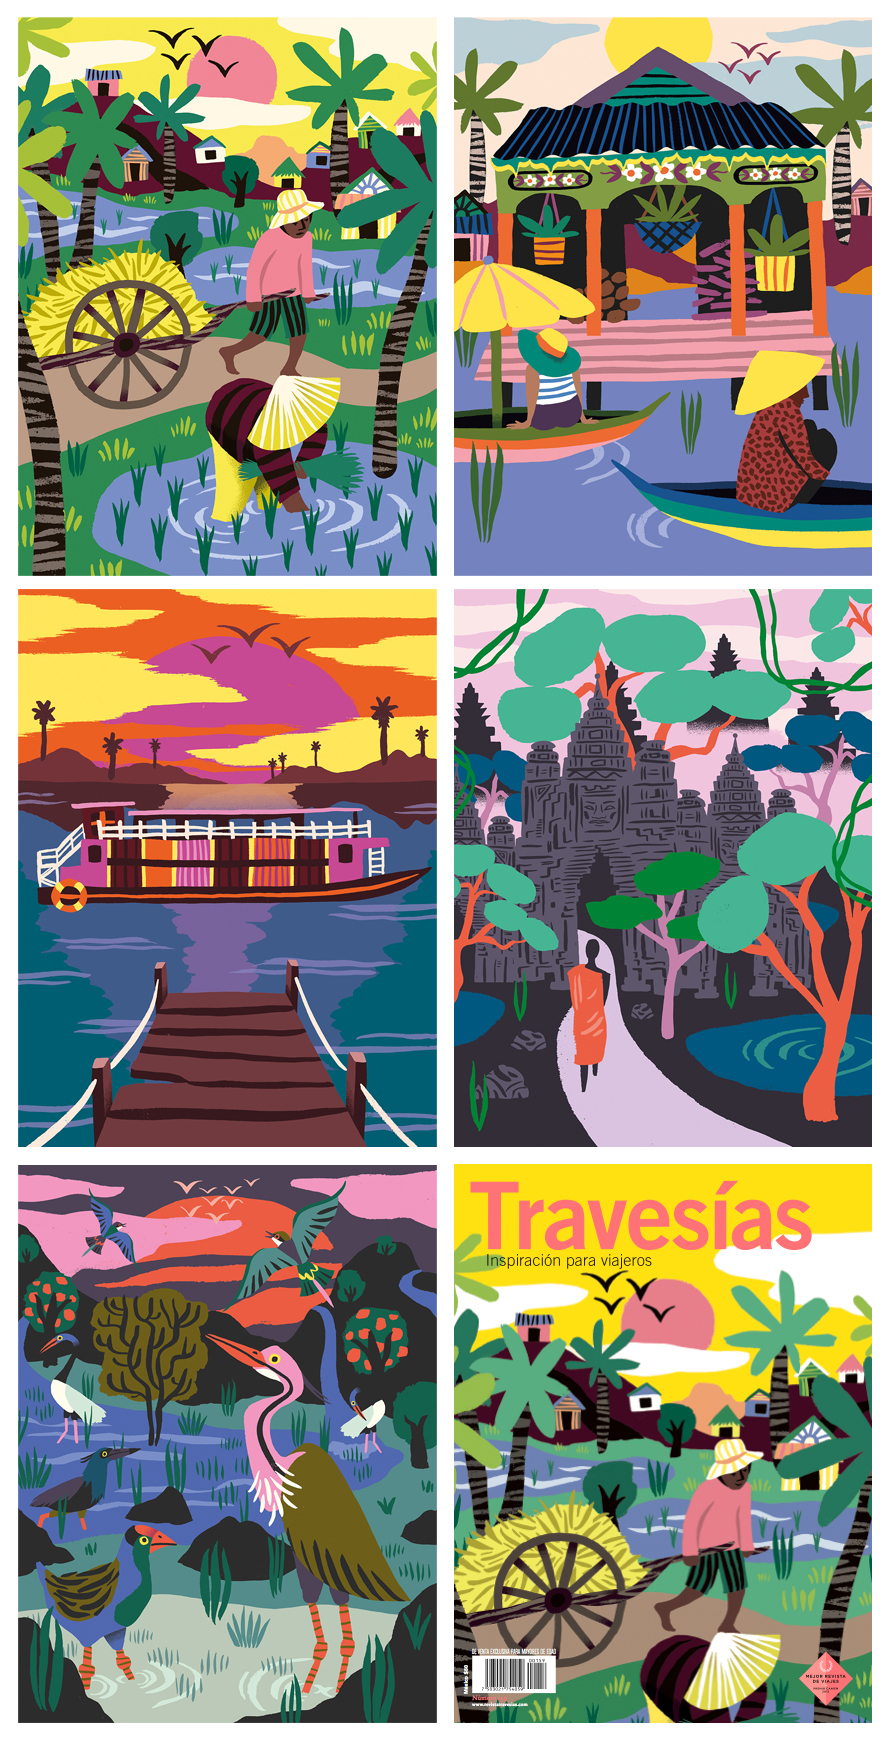 Cambodia travesías Travesias Magazine magazine Travel traveling Travel Magazine culture angkor boat trip journey Holiday discover asia